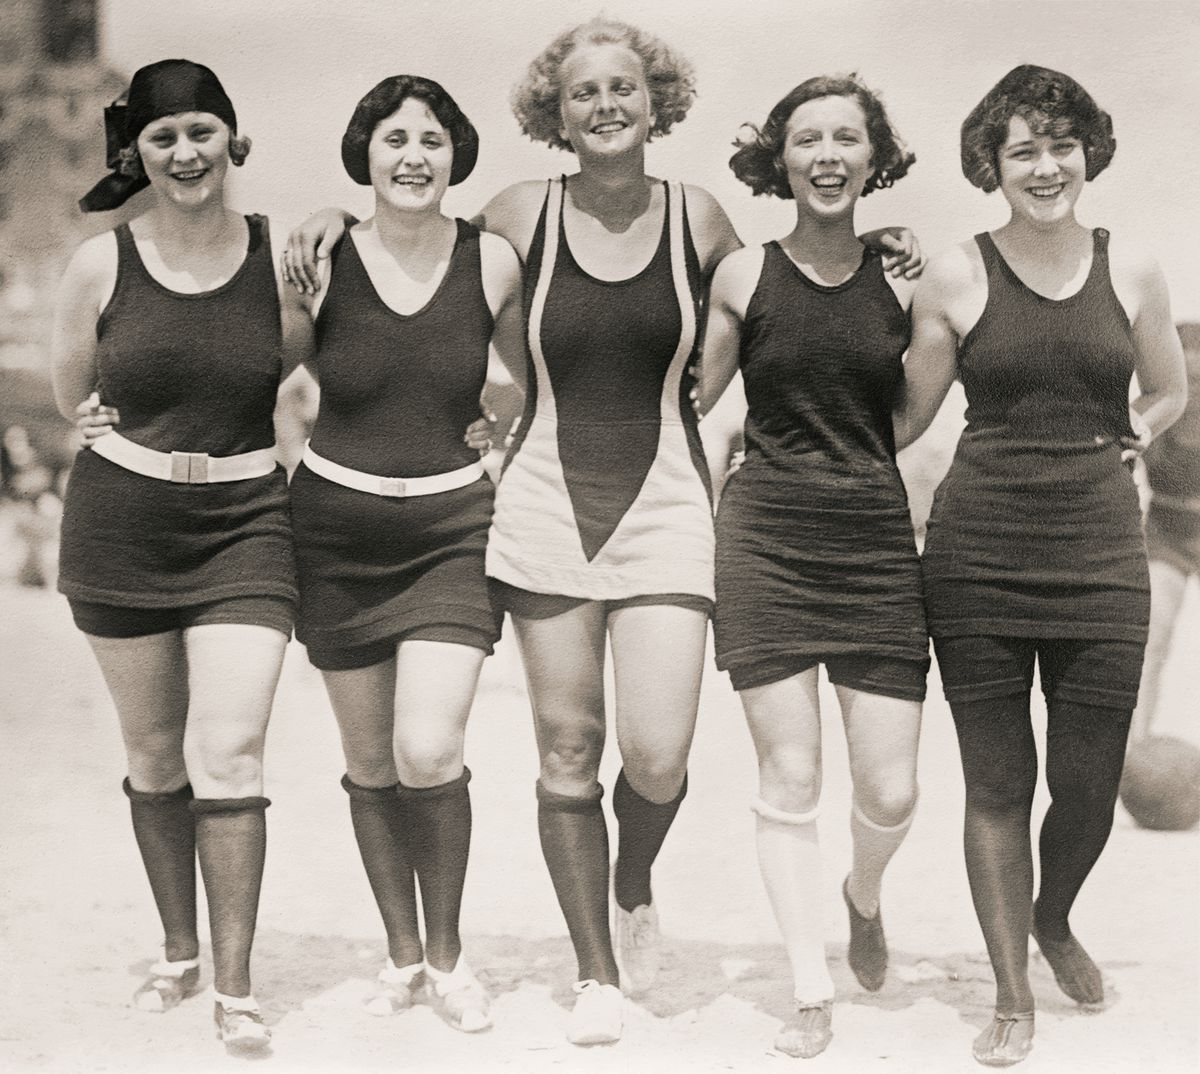 Wool bathing suits. They were real.